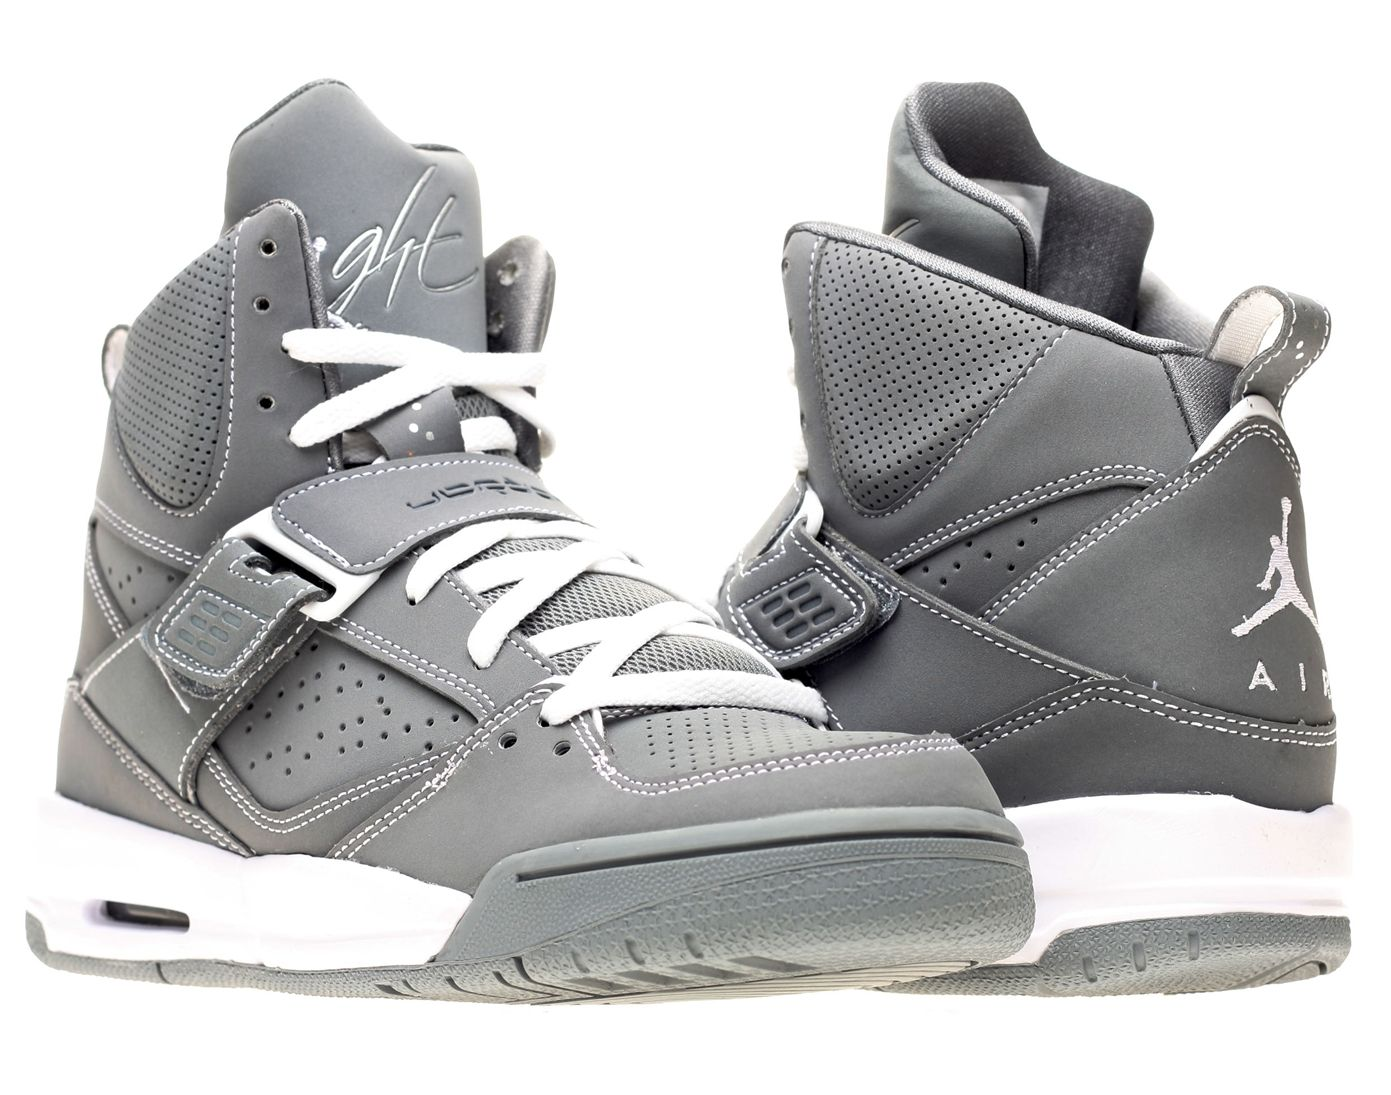 d0a053e1b16 Nike air Jordan flight 45 high ( i want these) | Shoes | Sneakers ...